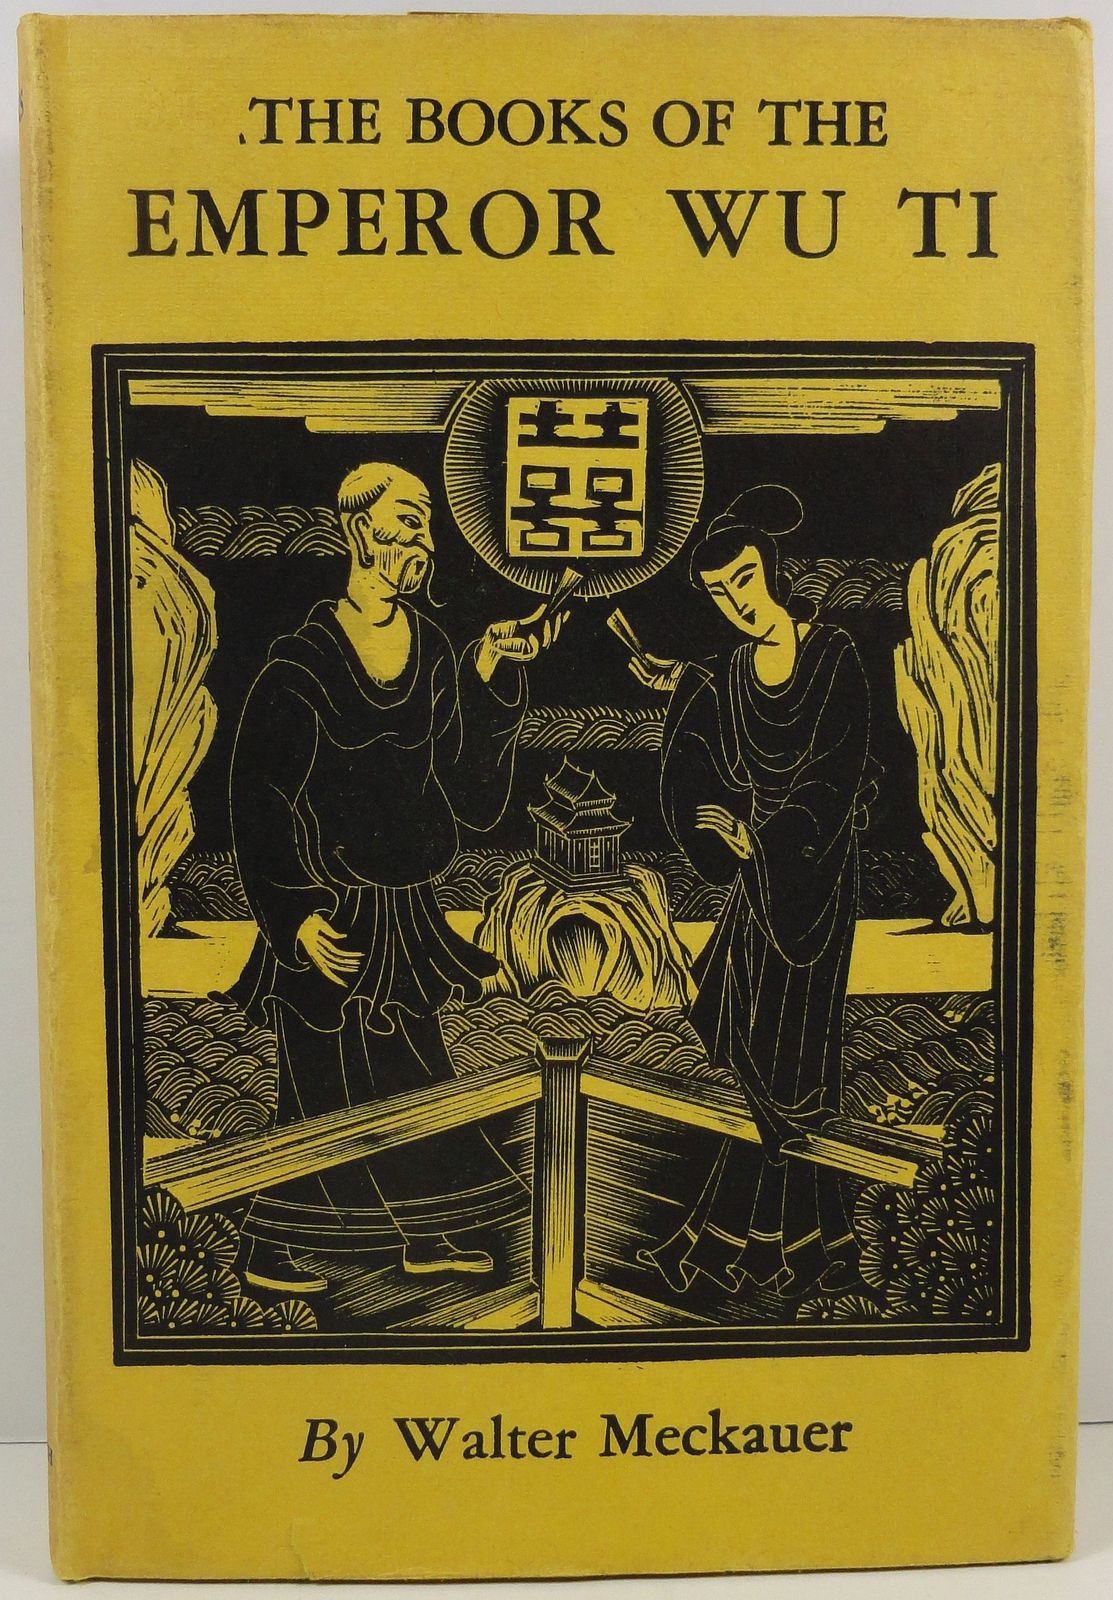 Primary image for The Books of the Emperor Wu Ti by Walter Meckauer 1931